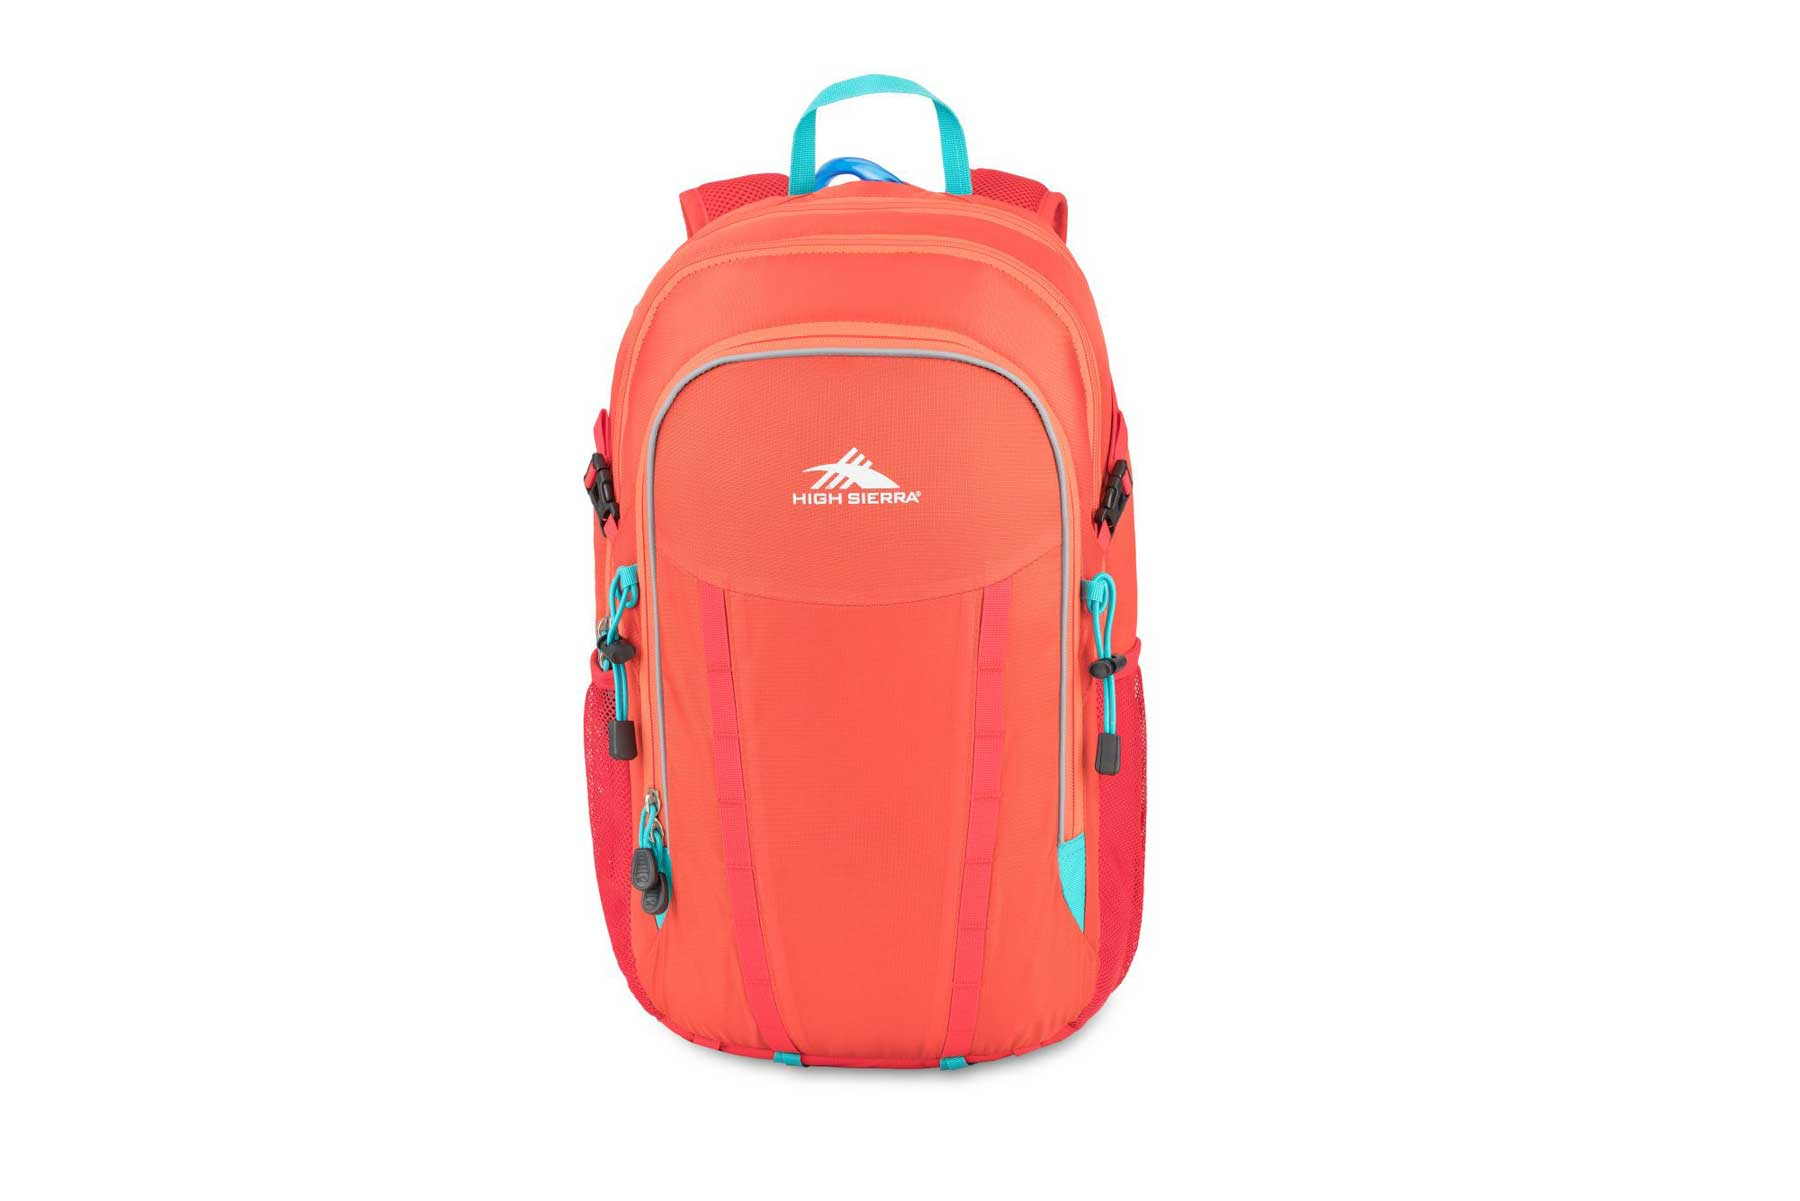 High Sierra 24L Hydration Pack